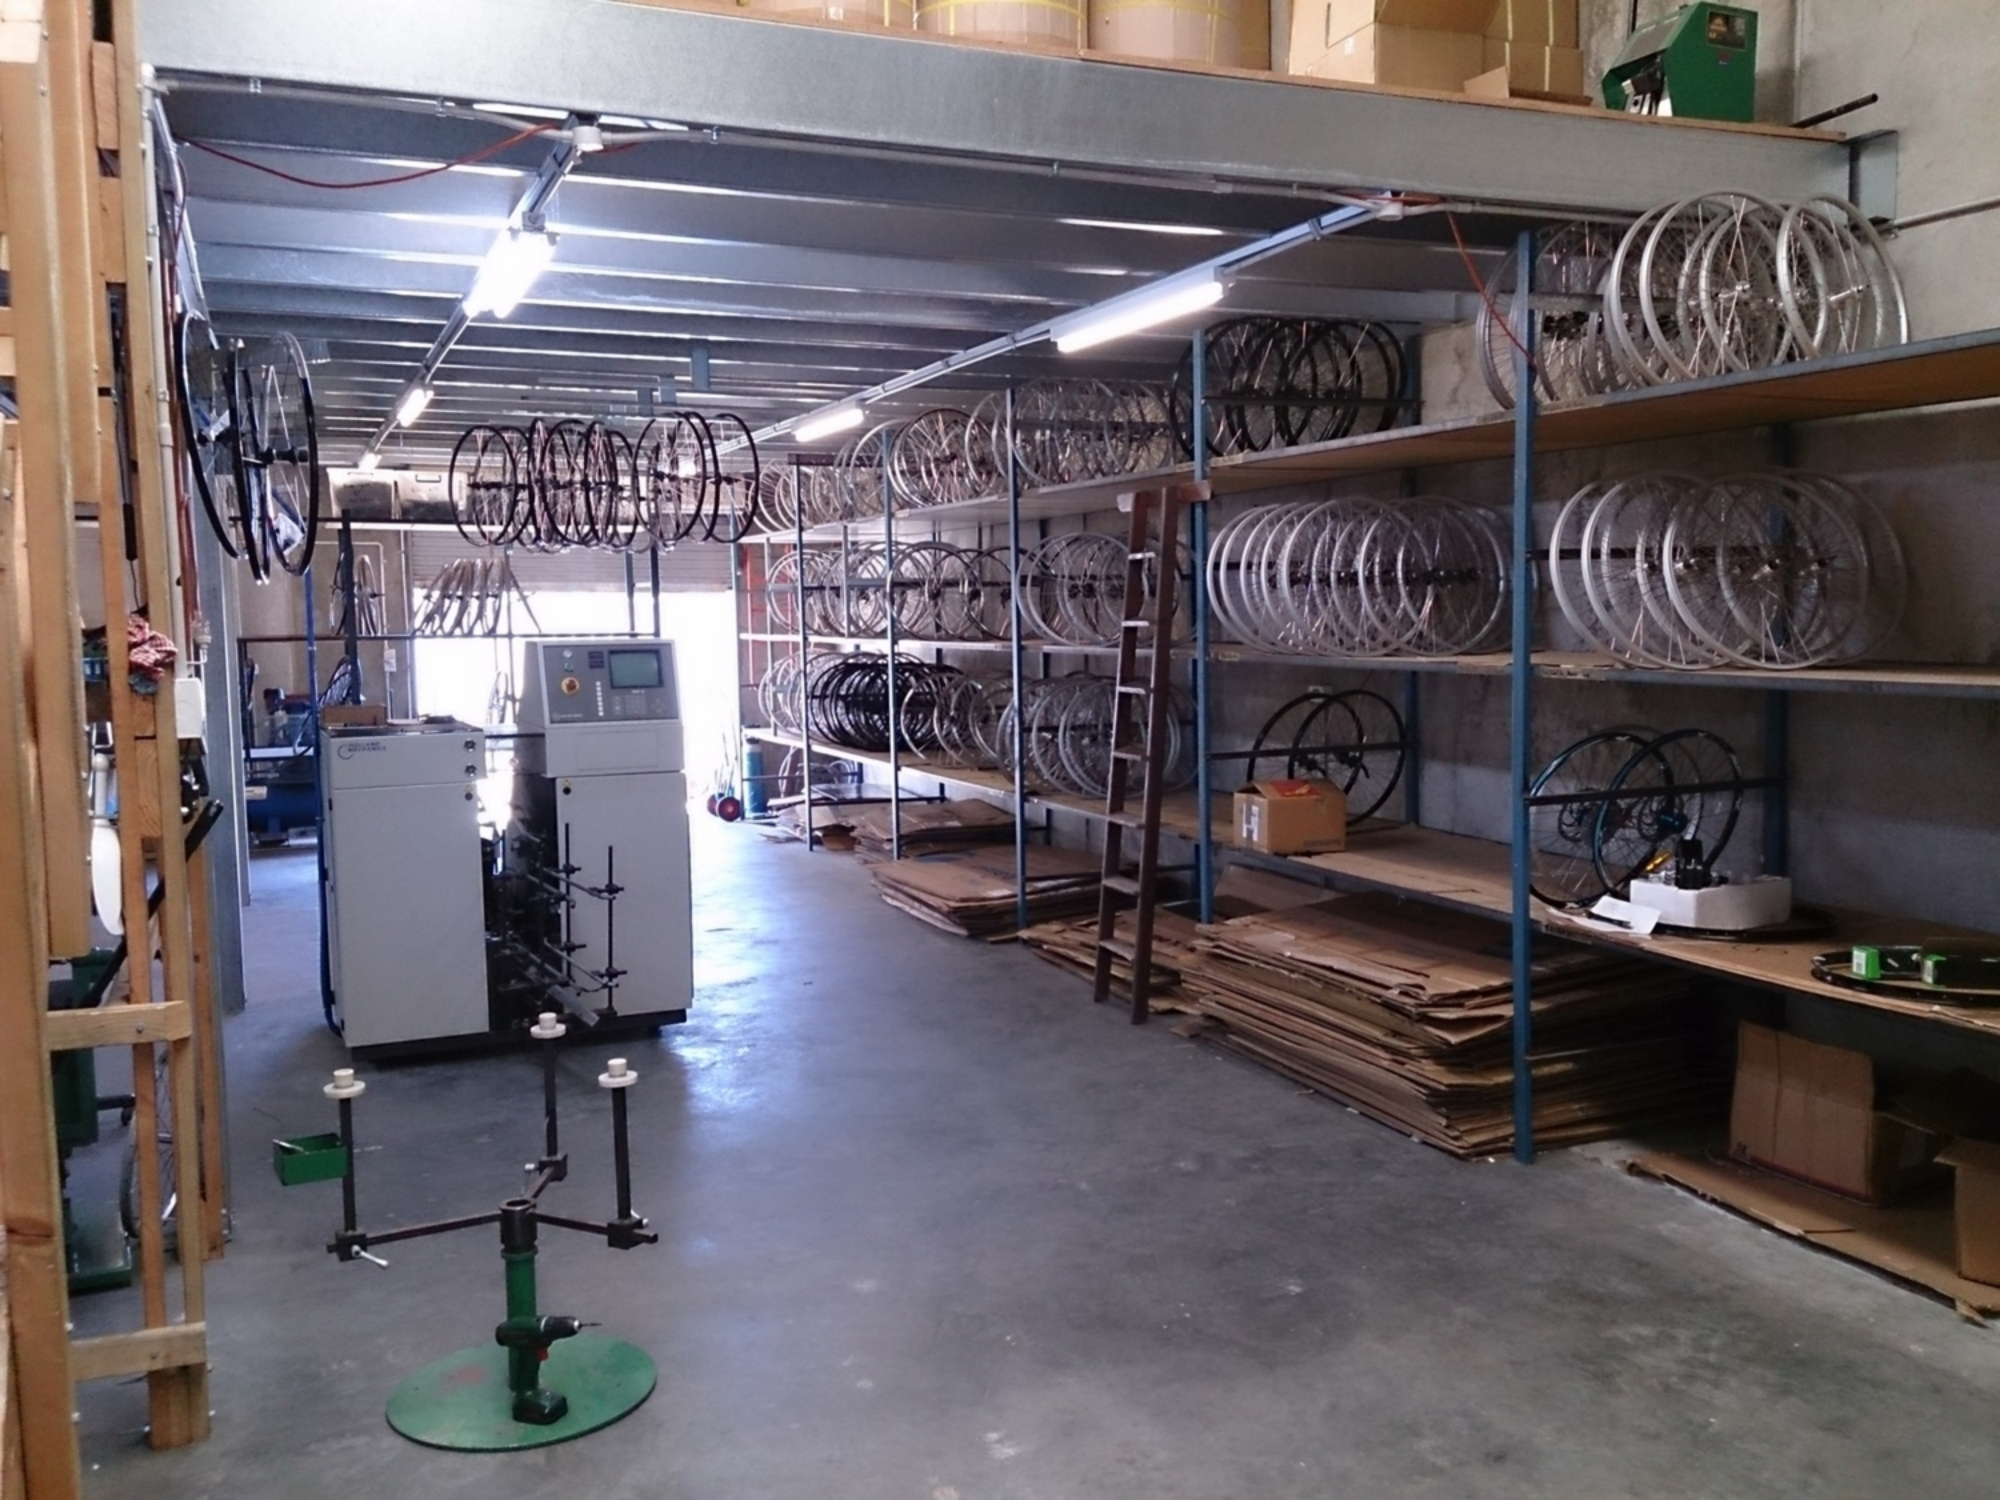 Wheels Direct's Manufacturing Warehouse Facility